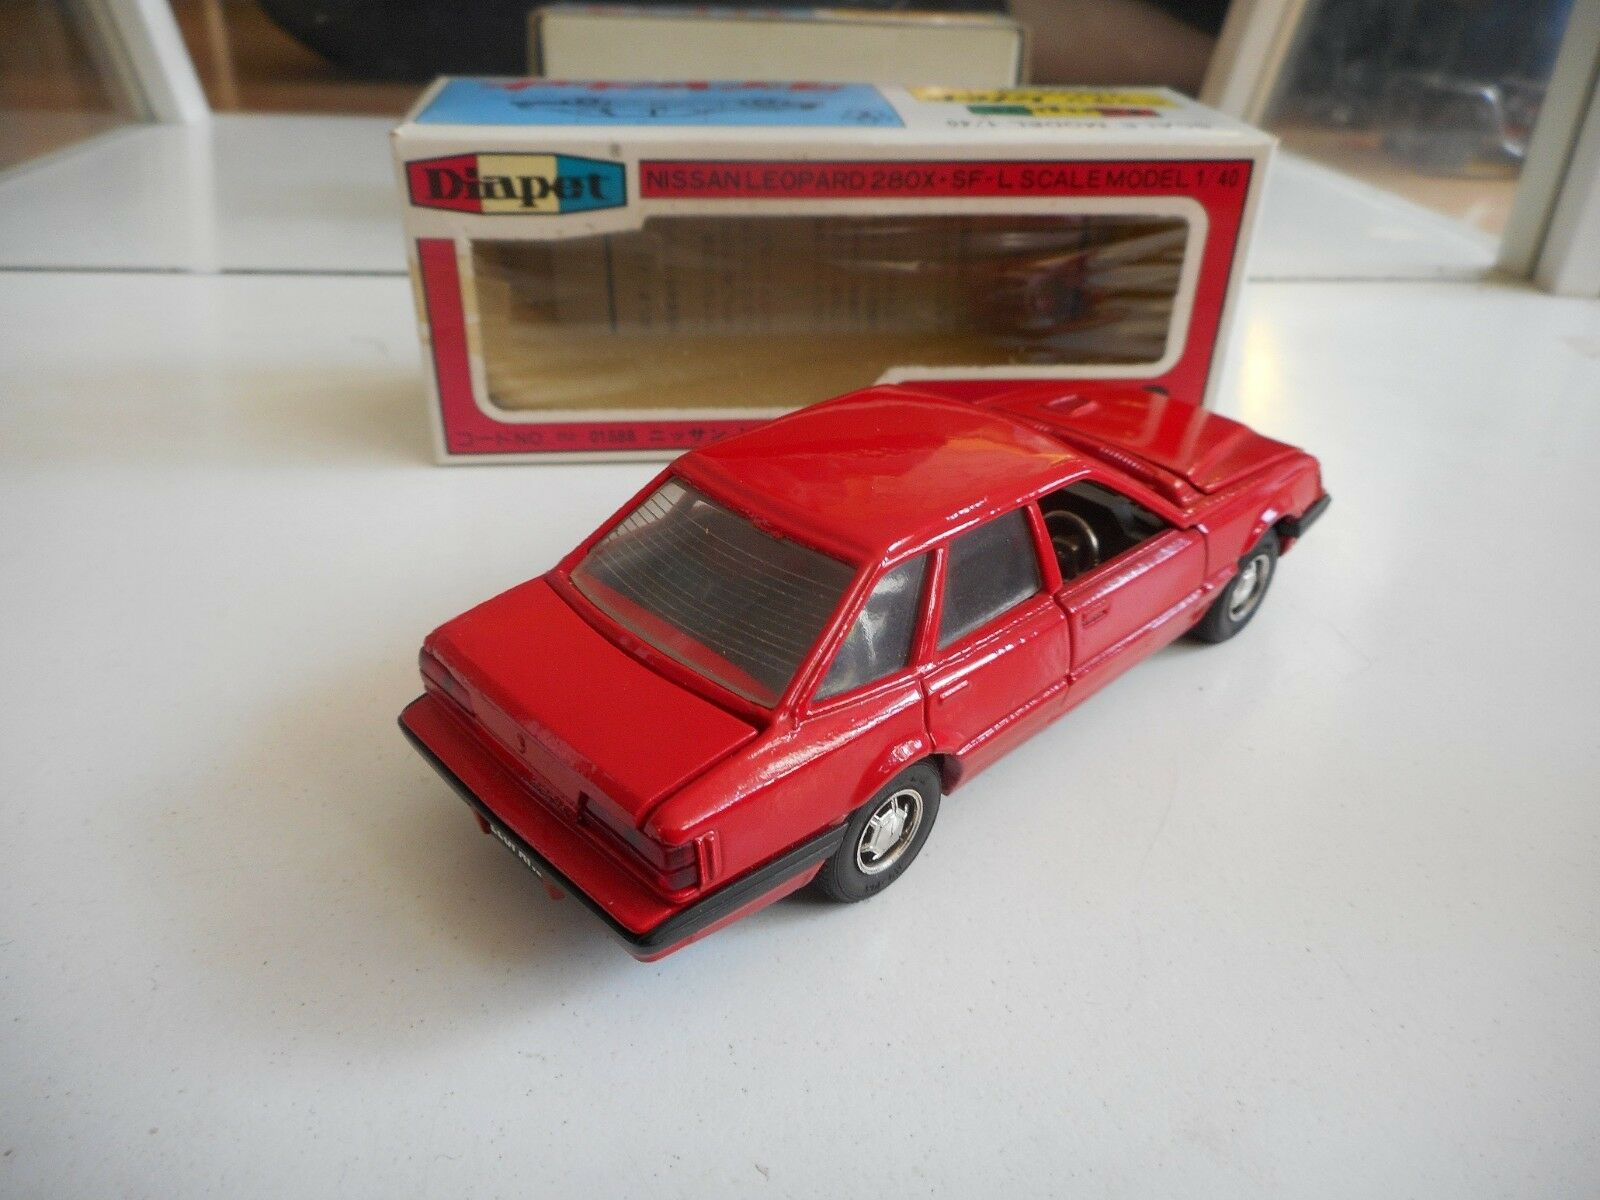 Yonezawa Toys Diapet Nissan Nissan Nissan Leopard in Red on 1 40 in Box 337140